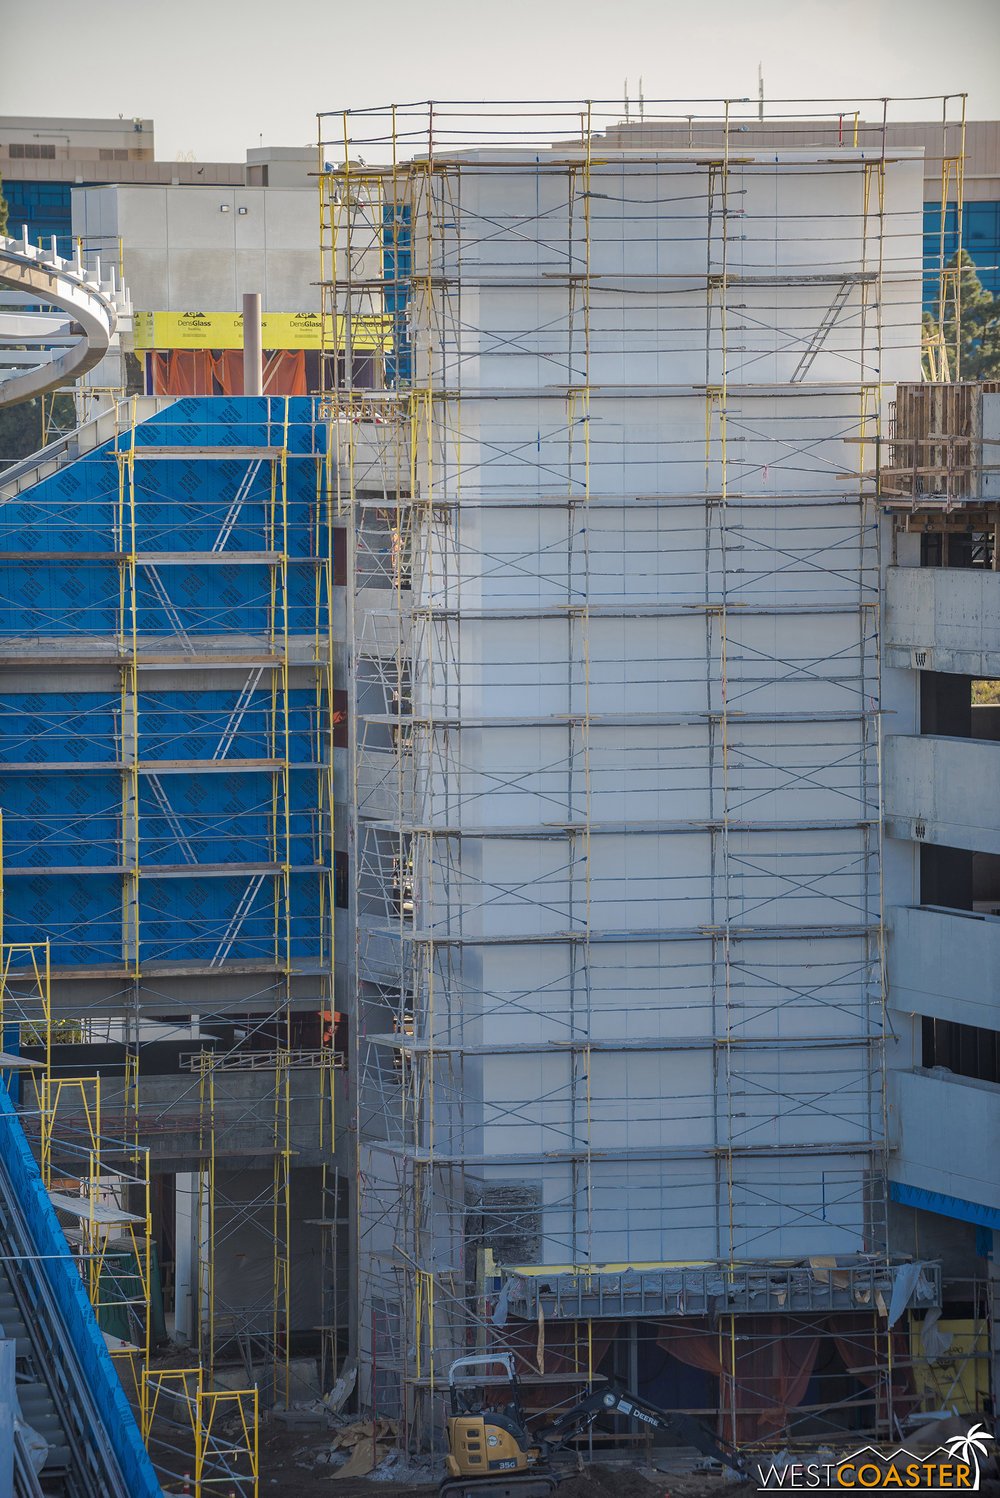 The elevator towers are being wrapped up.  Over in the existing structure, the building material is an aluminum composite metal panel.  But here, it looks like they're using plaster (stucco) with joints to mimic the panel look!